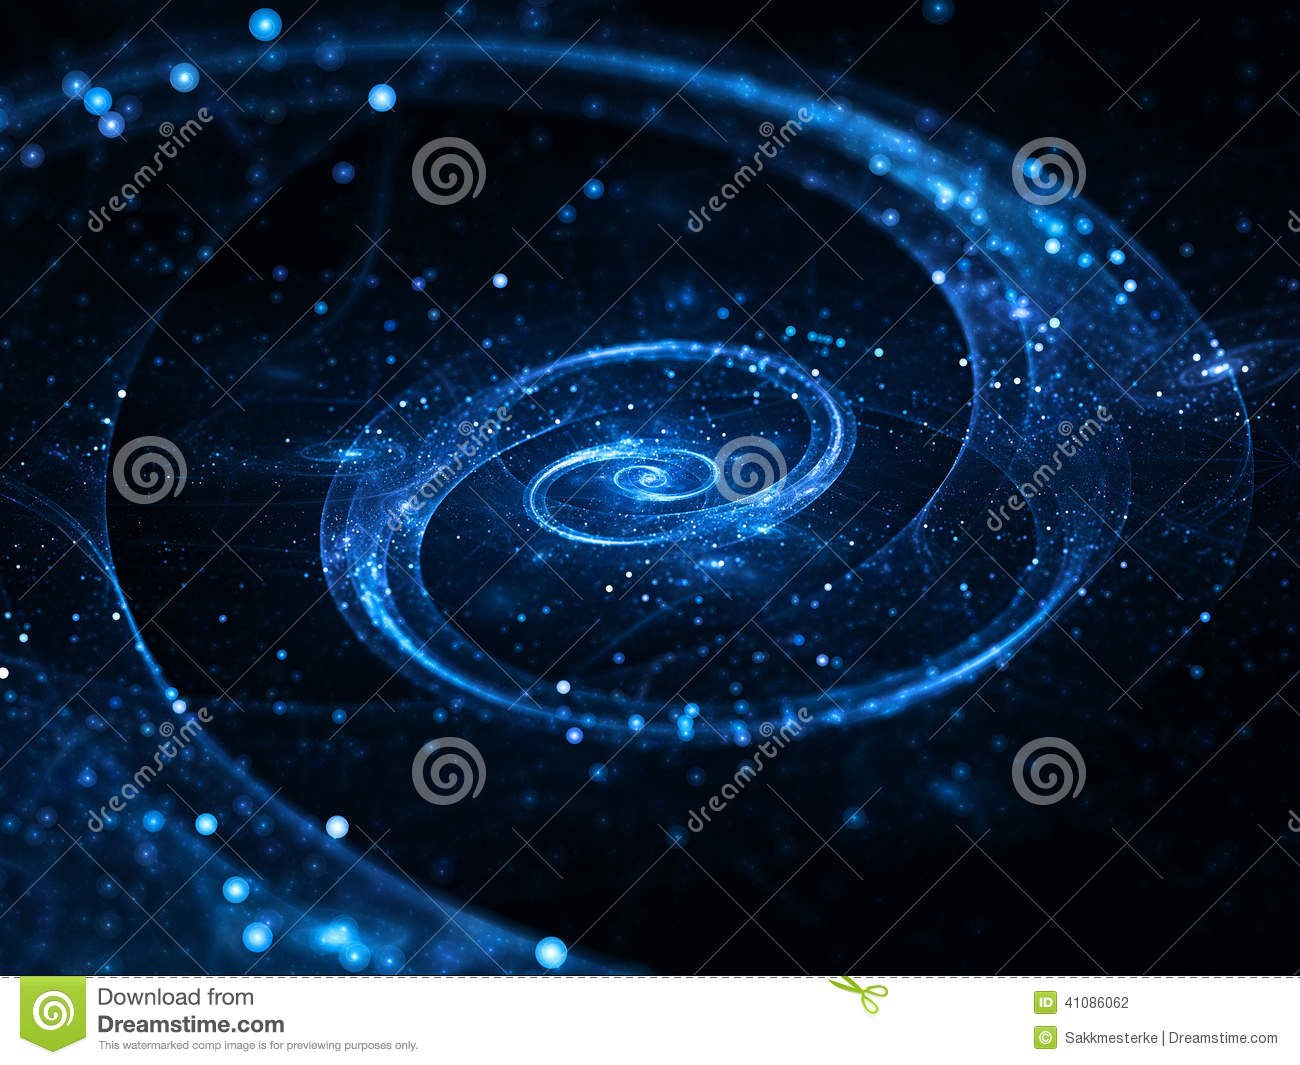 blue spiral galaxy abstract - photo #16